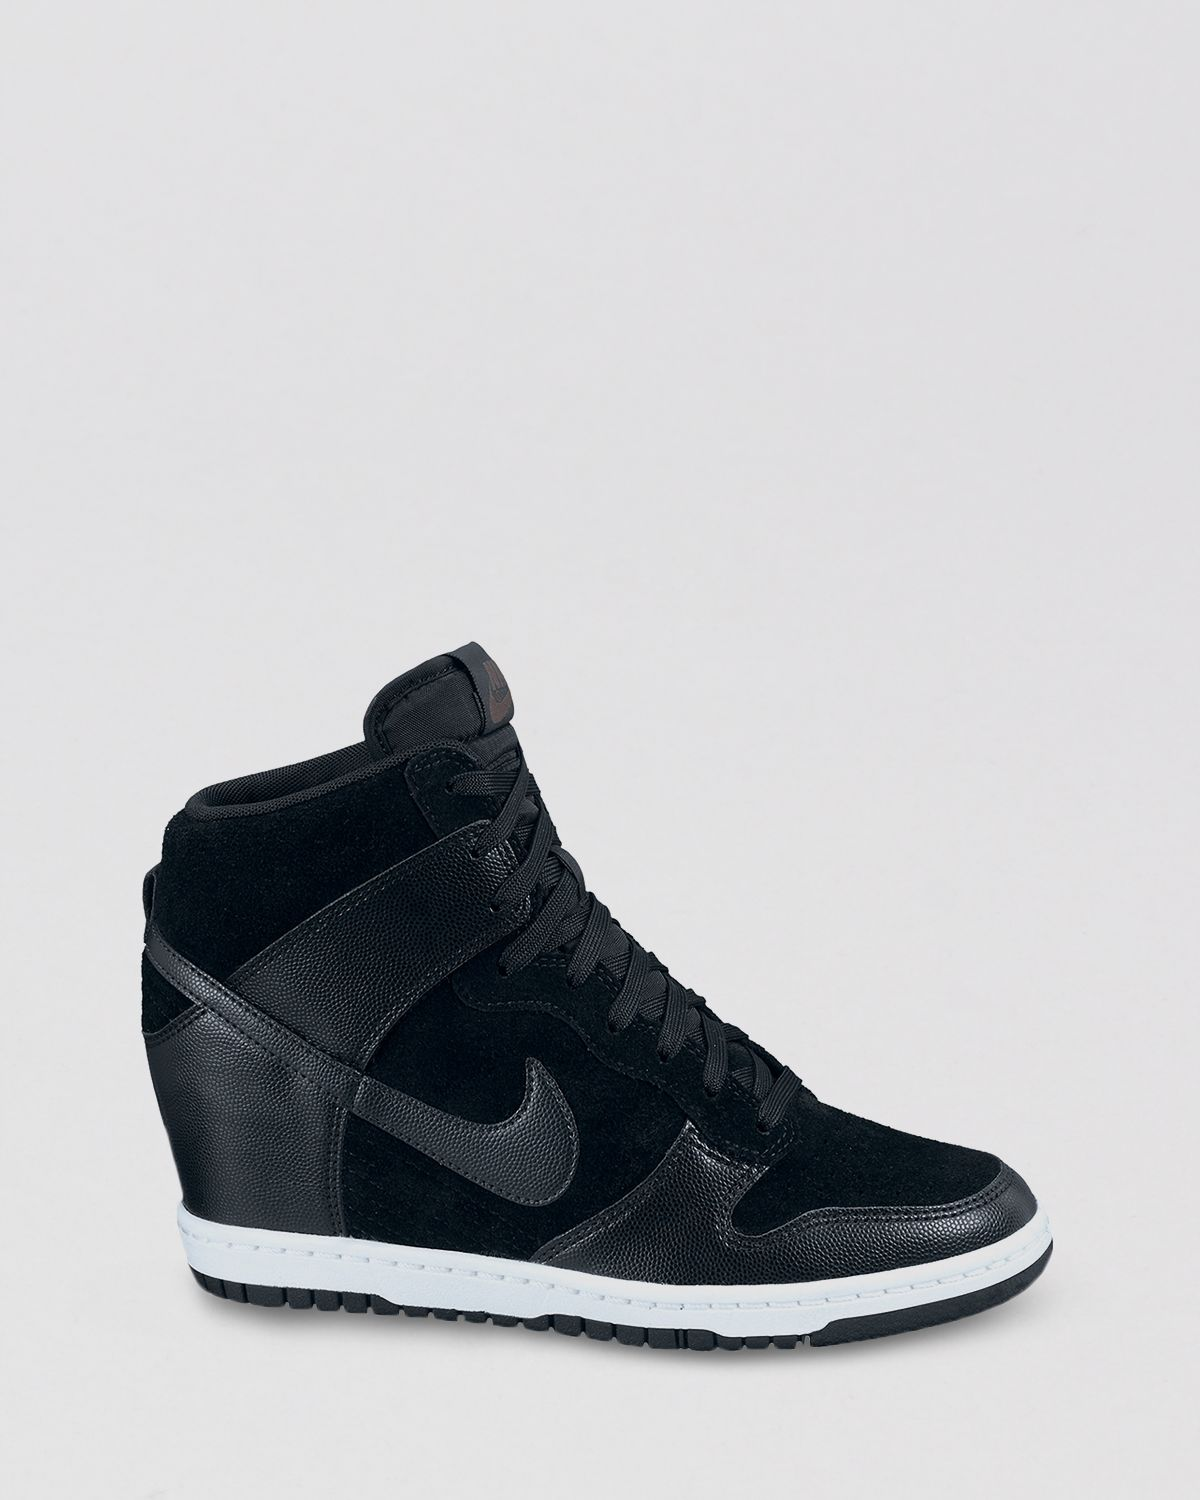 31a0aa645848 Lyst - Nike High Top Lace Up Sneakers Womens Dunk Sky Hi in Black